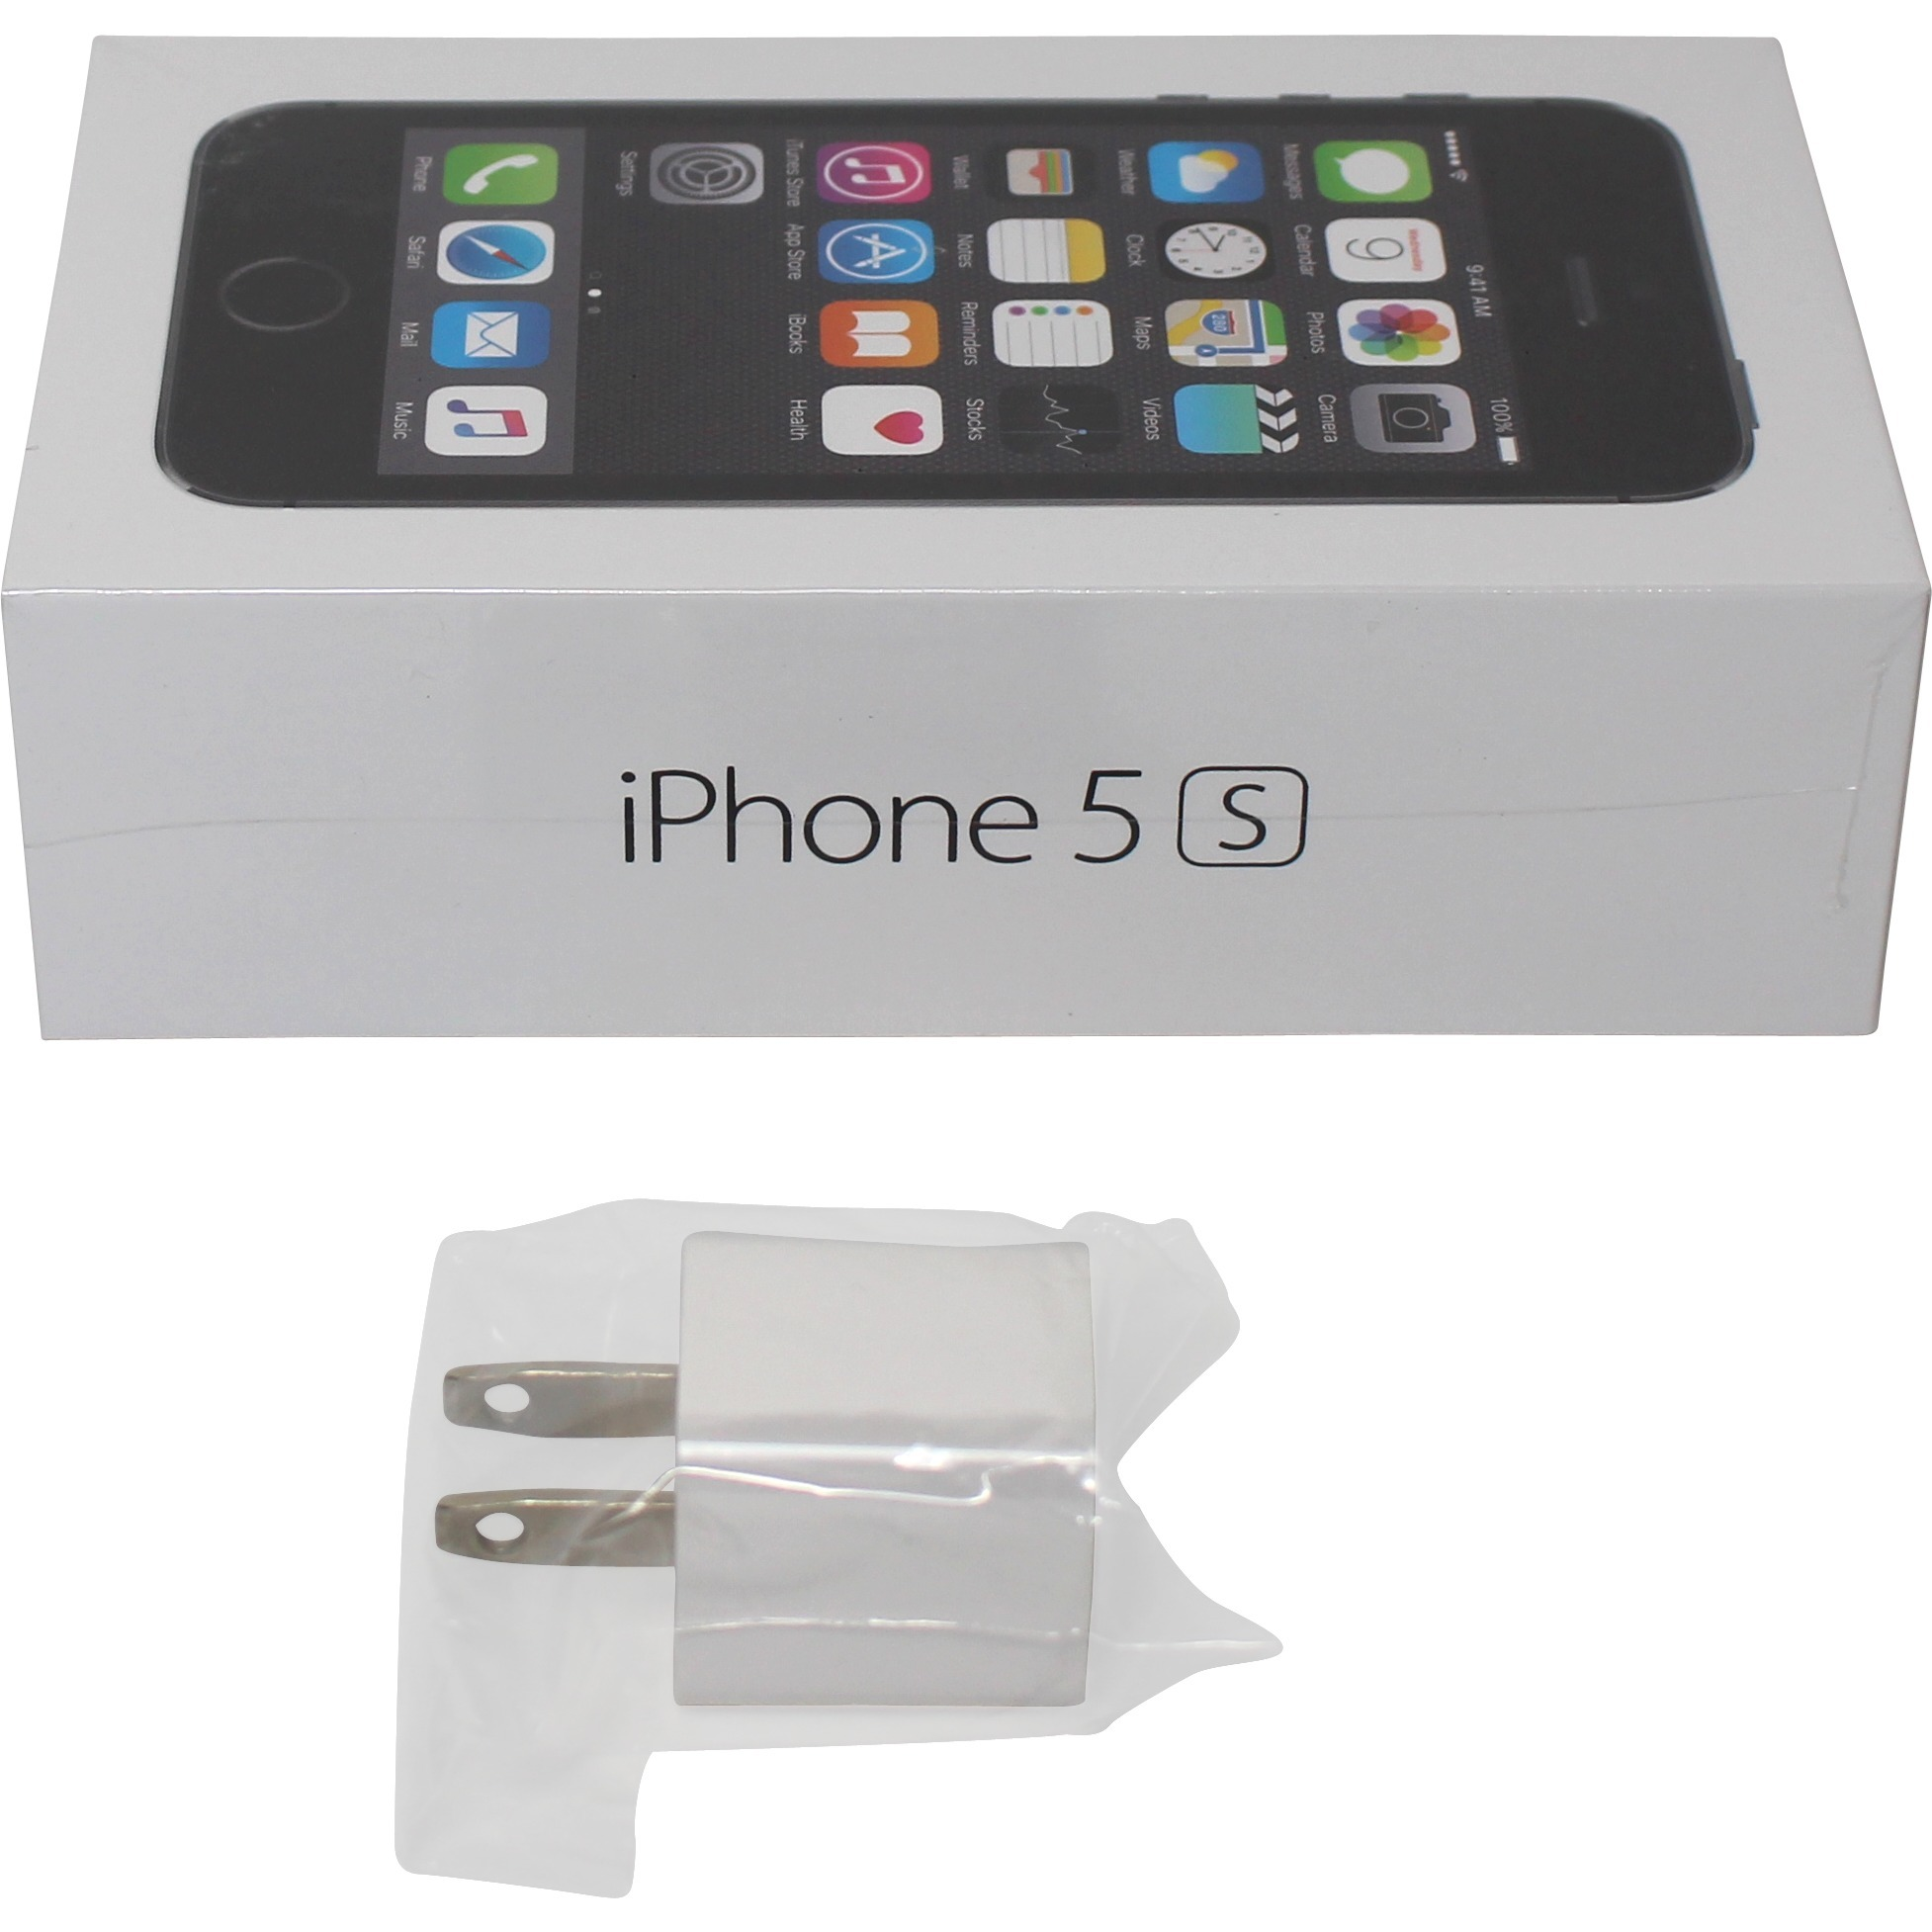 apple iphone 5s 32gb space gray gsm factory unlocked for usa 4g smartphone. Black Bedroom Furniture Sets. Home Design Ideas